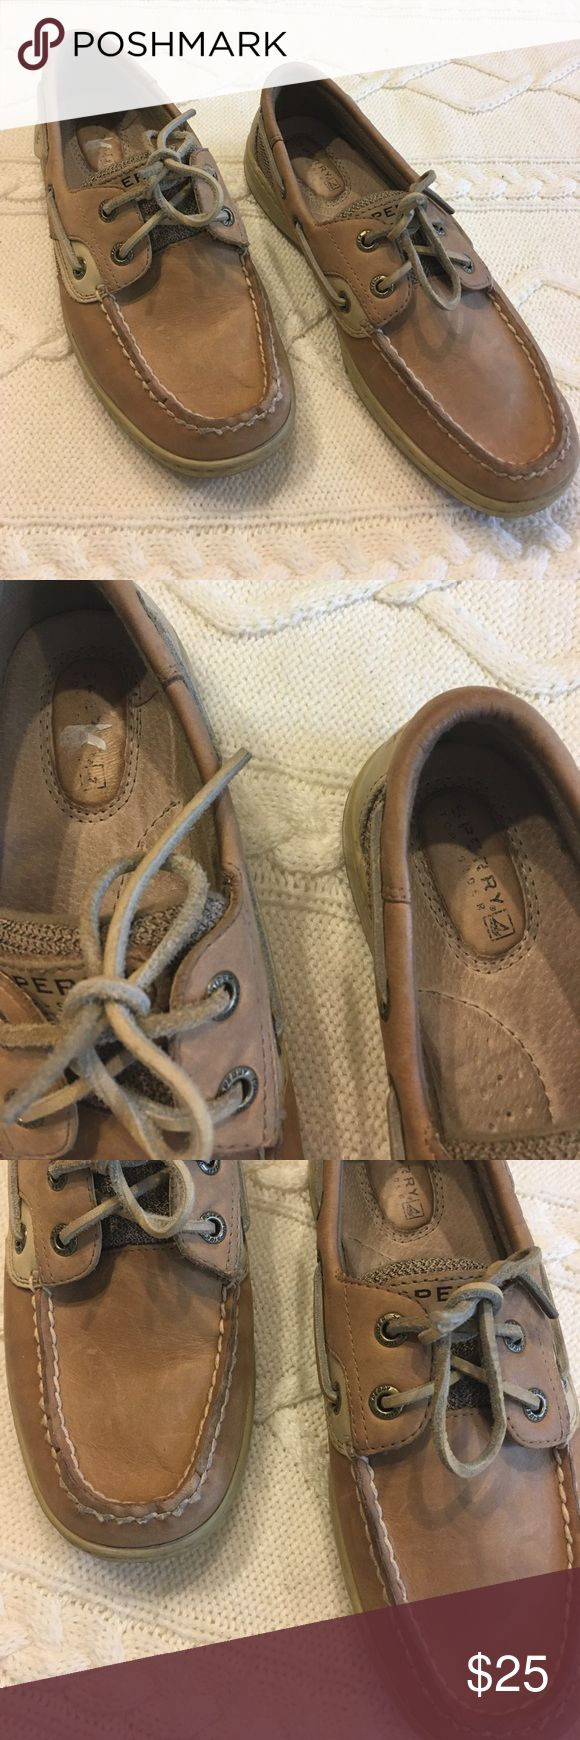 Classic Sperry Topsiders Classic Sperry Topsiders, size 6.5, a couple of spots, but overall good condition. Sperry Shoes Flats & Loafers